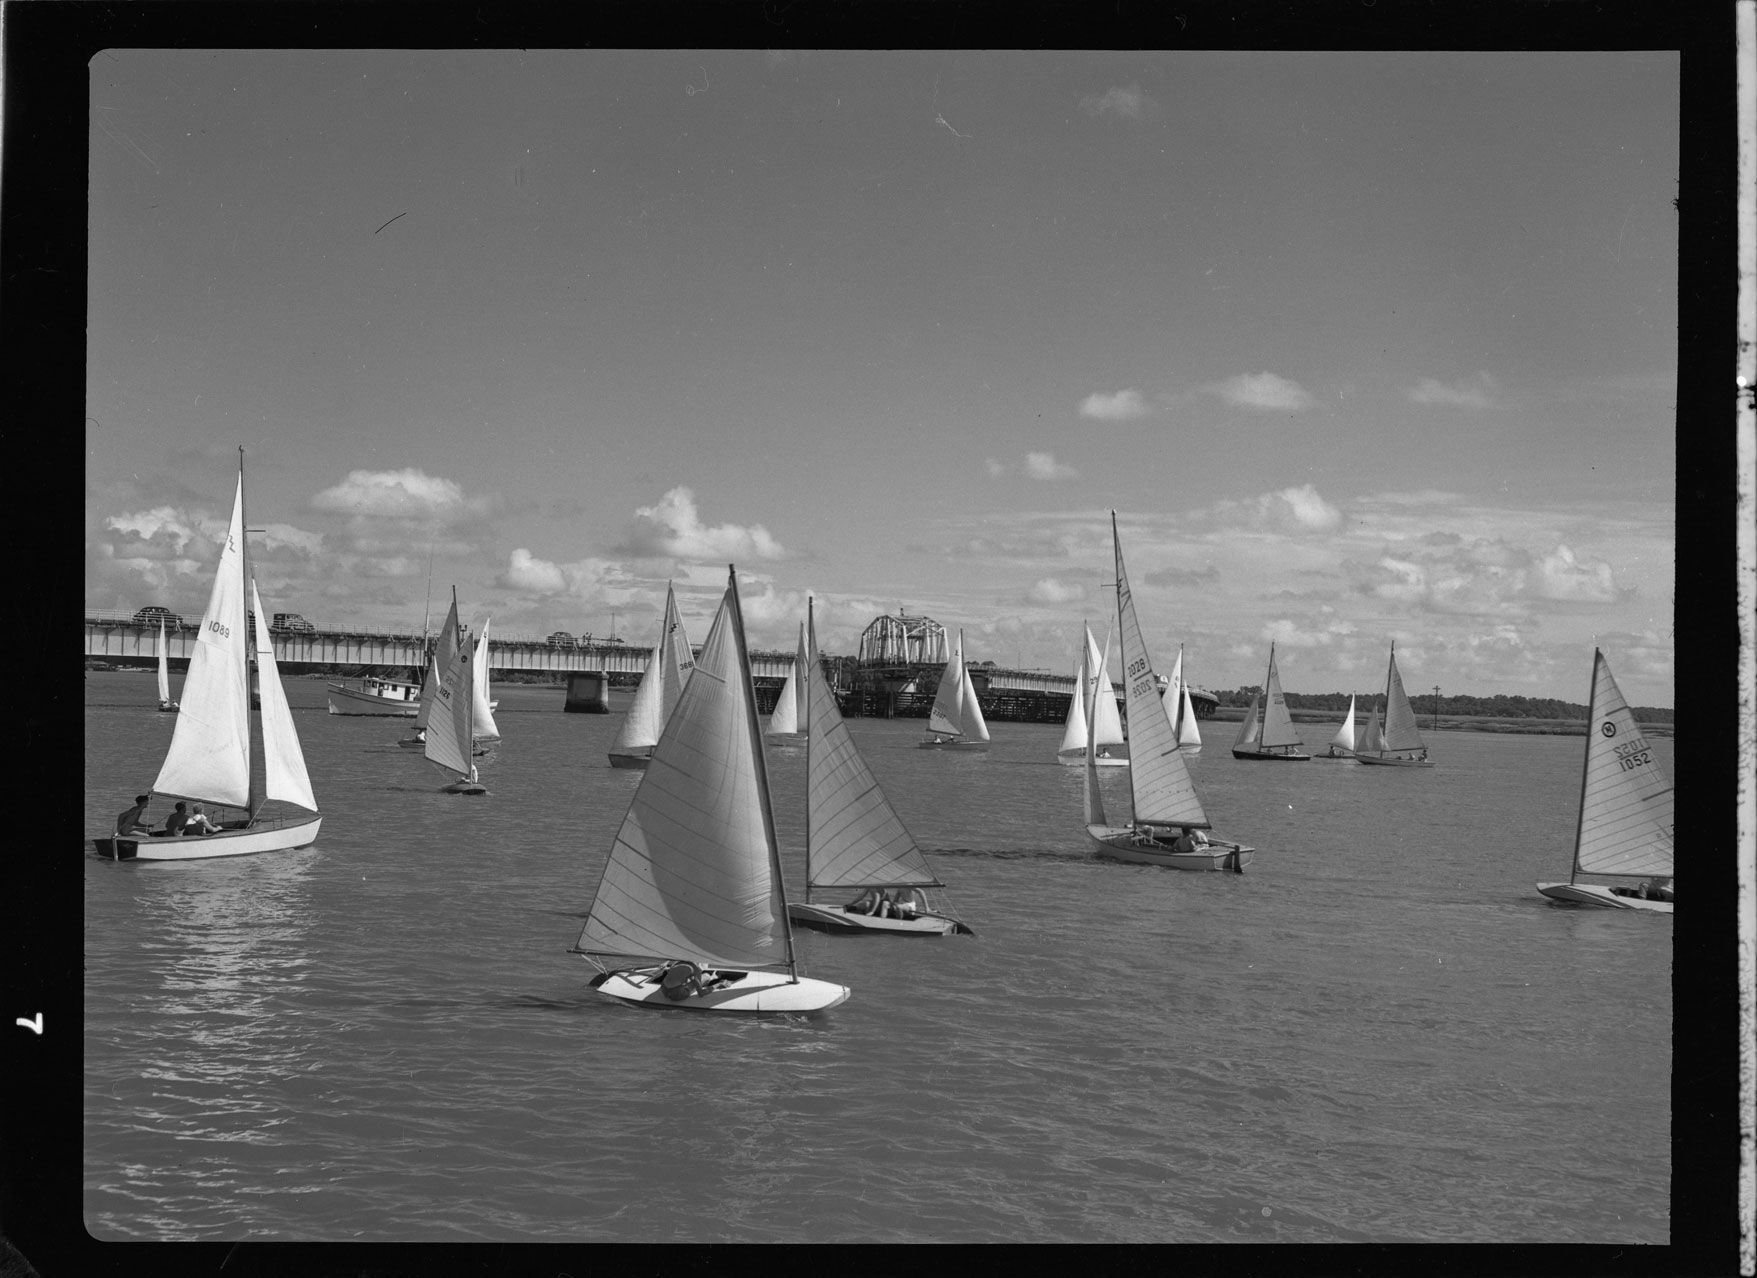 Sail boat races silhouetted by the open Lady's Island swing bridge